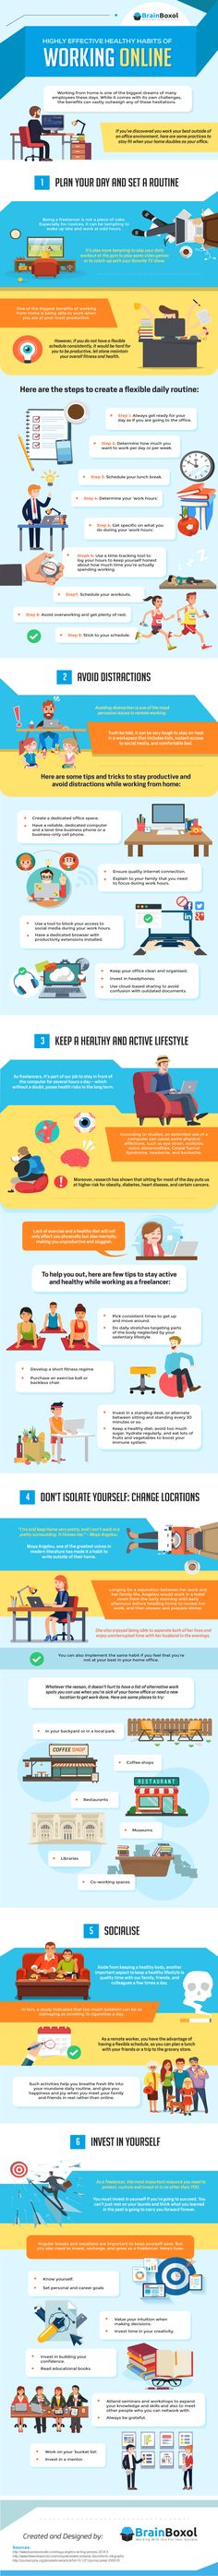 Highly Effective Healthy Habits of Working Online